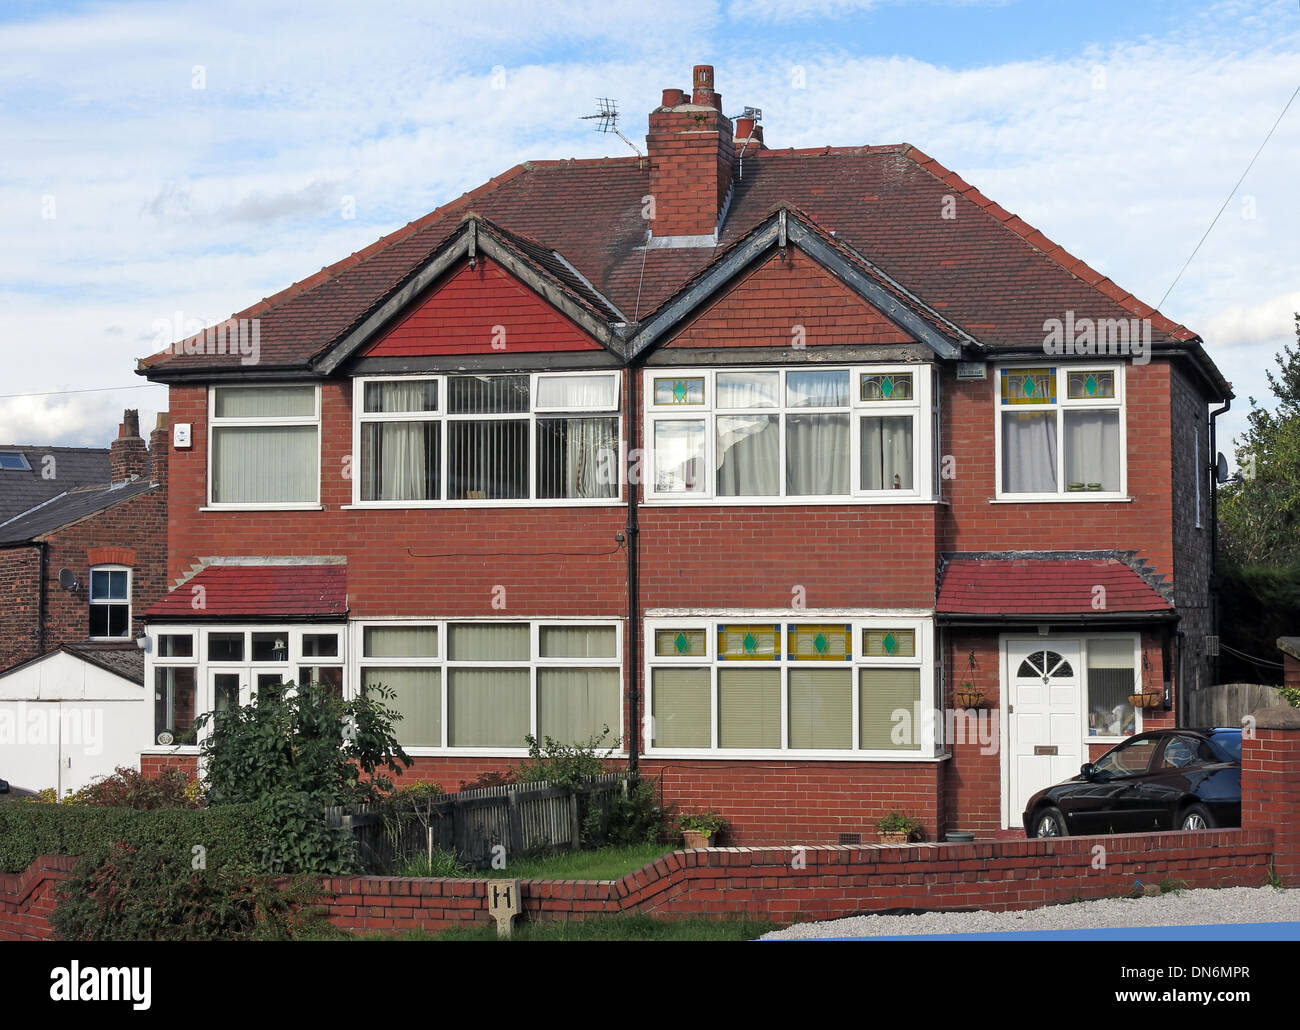 Typical 1930s English brick built semi-detached house with triangles over bedrooms, front garden shared chimney Warrington UK - Stock Image